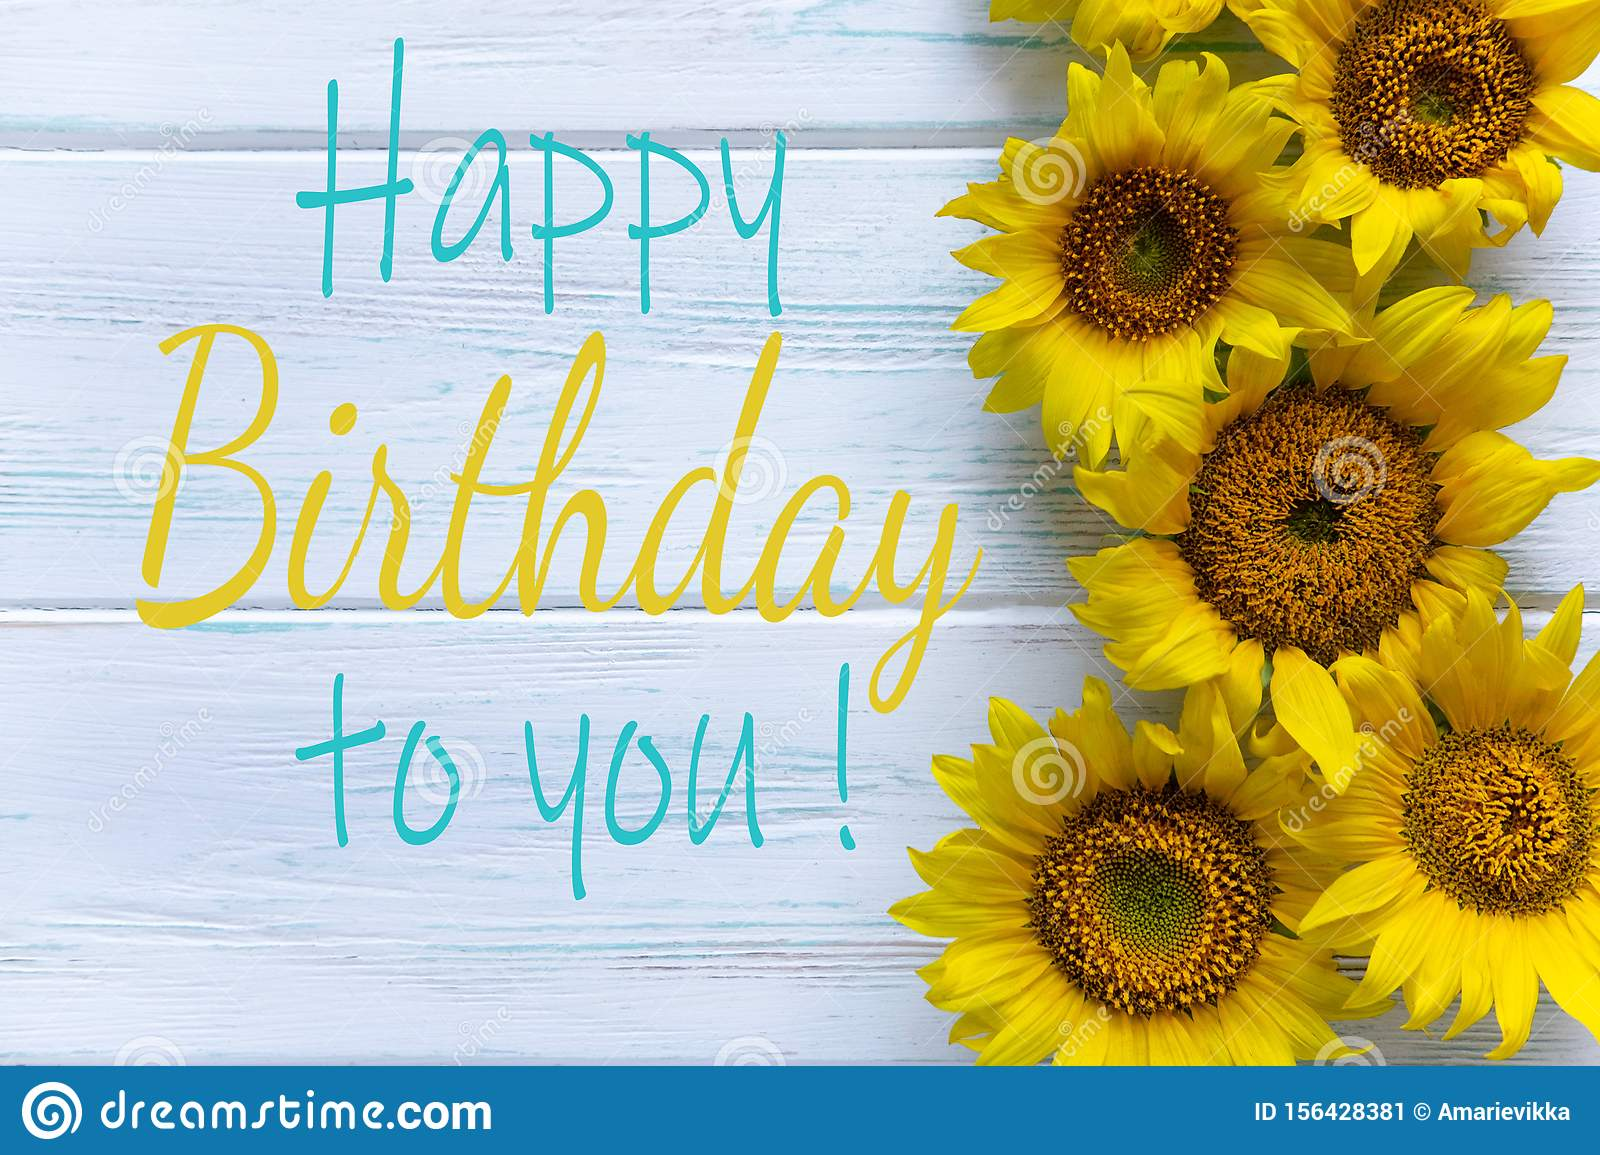 223 Sunflower Happy Birthday Card Photos Free Royalty Free Stock Photos From Dreamstime